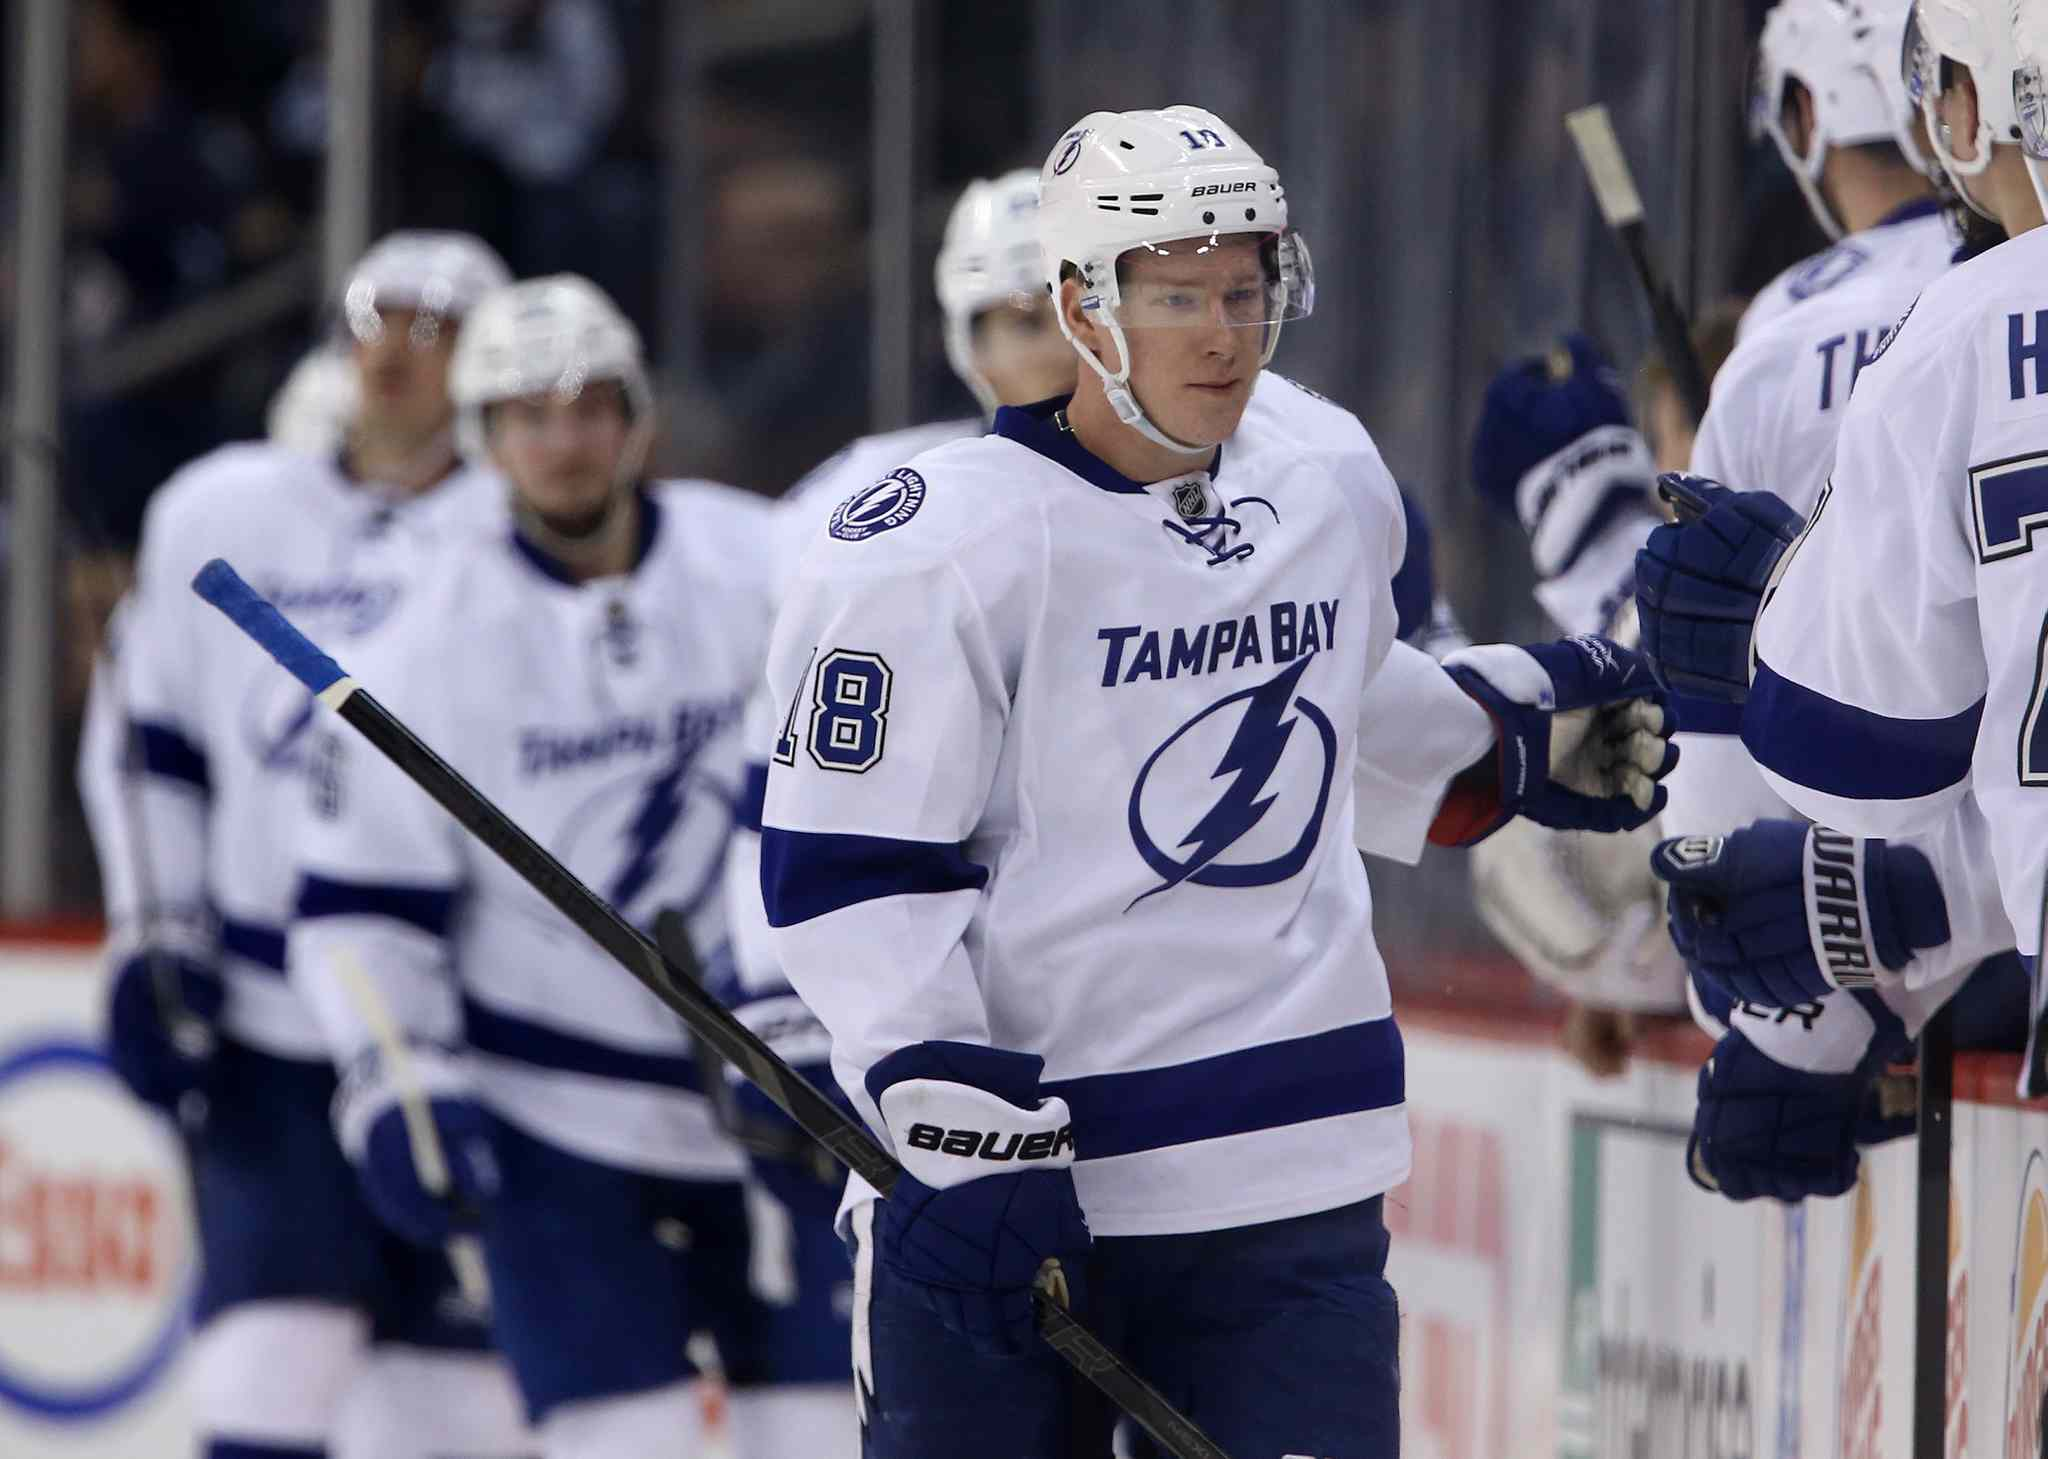 Tampa Bay Lightning's Ondrej Palat (18) celebrates his second period goal against the Winnipeg Jets.